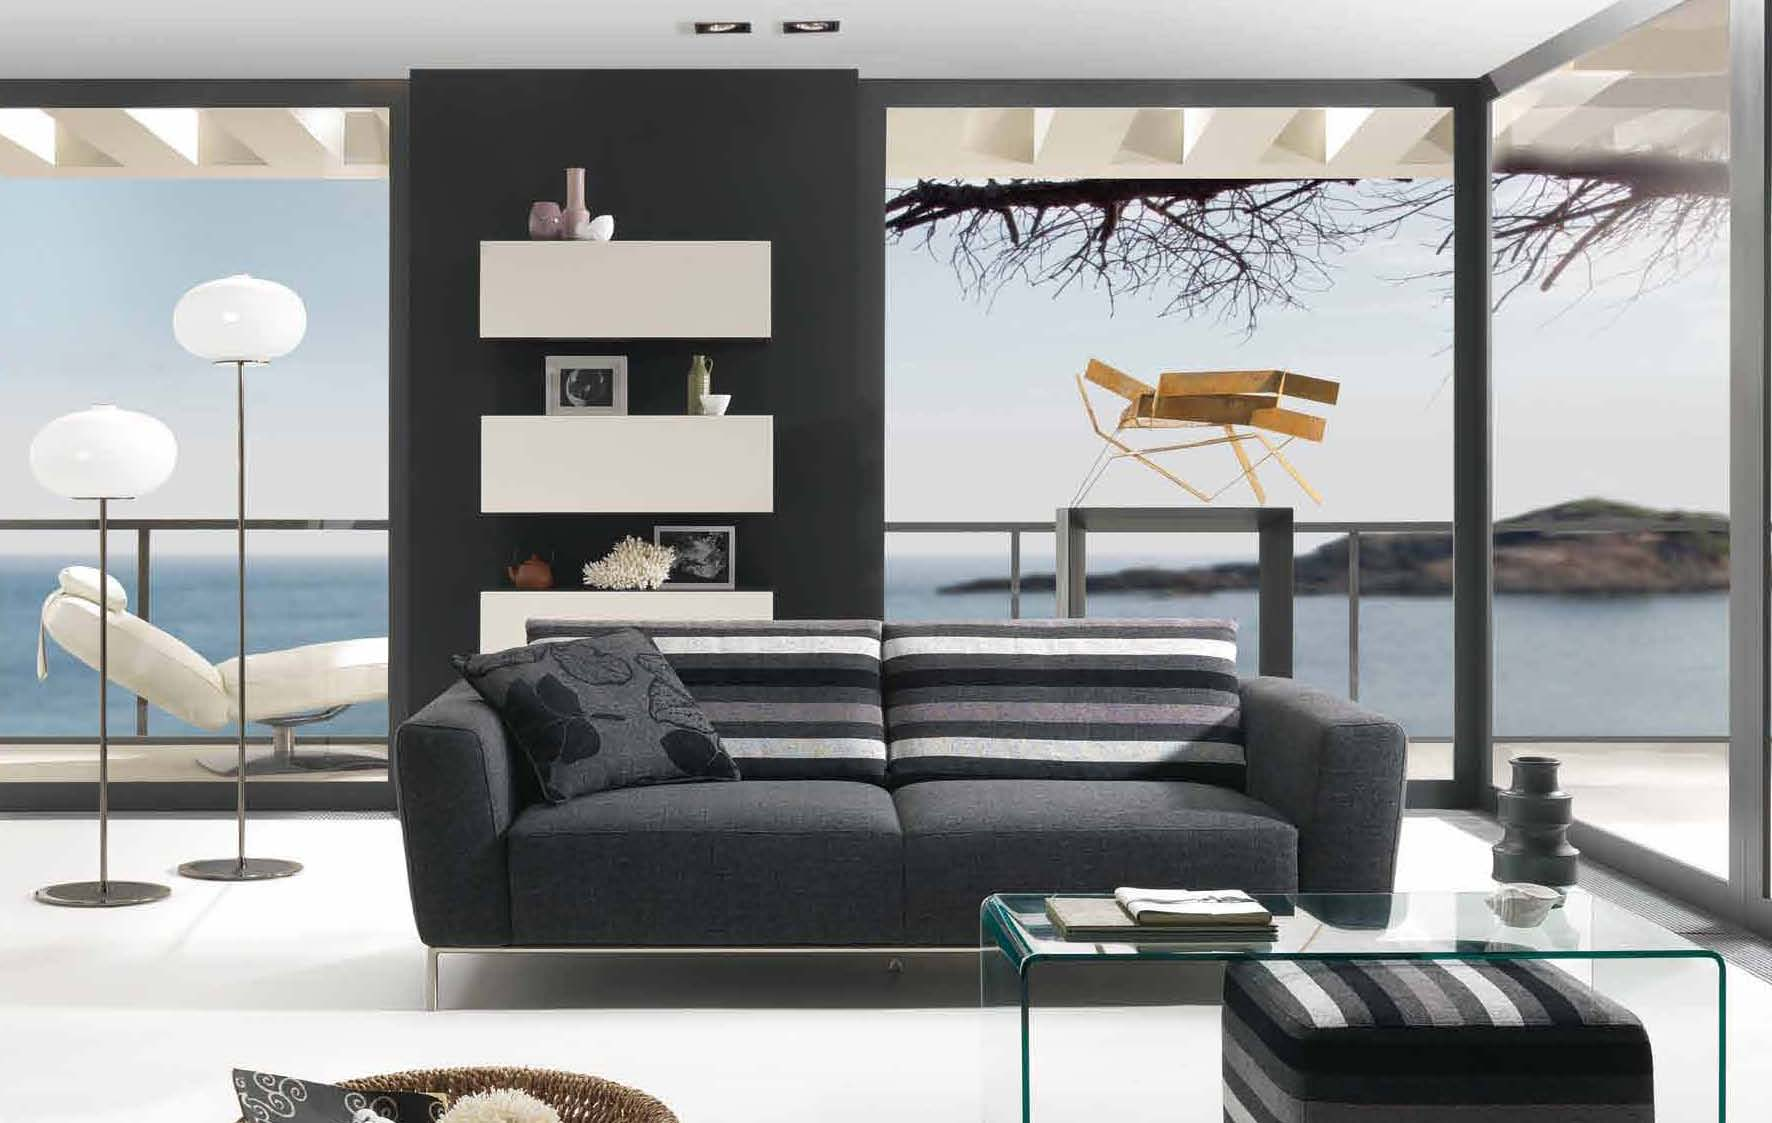 new style living room furniture orange yellow and brown ideas modern rooms technology for it homemajestic dfsfs